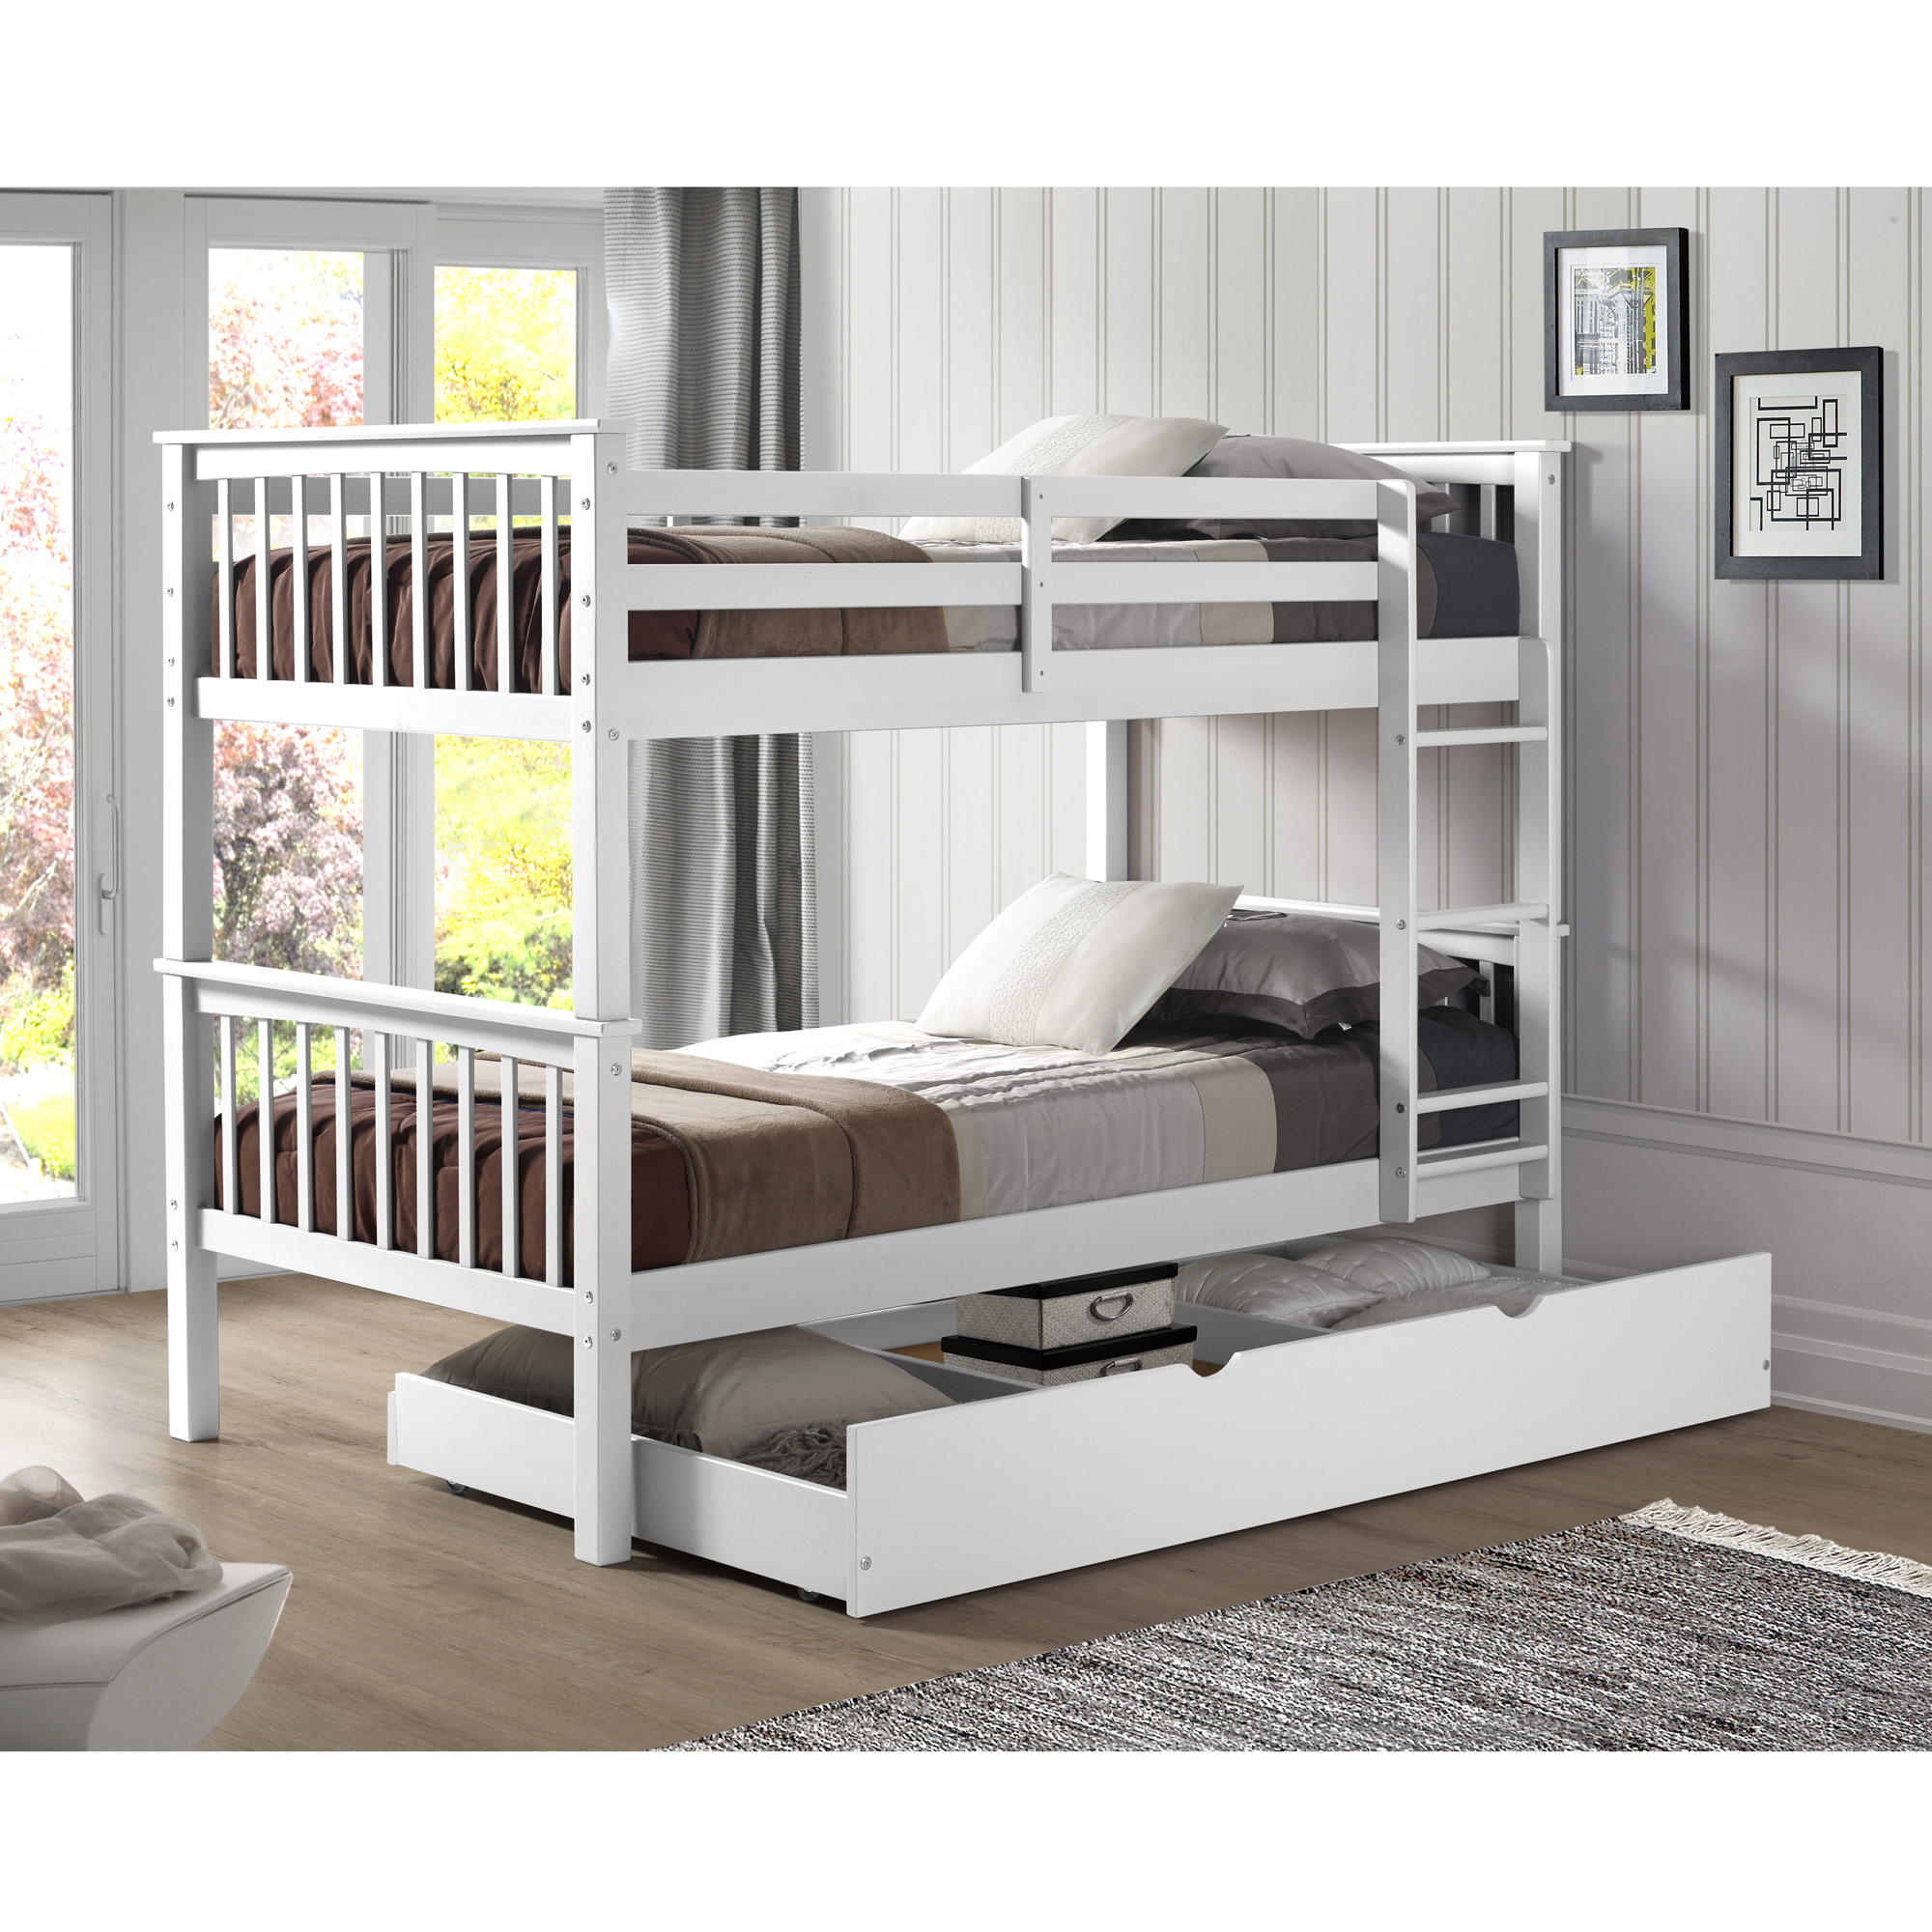 bed size twin beds